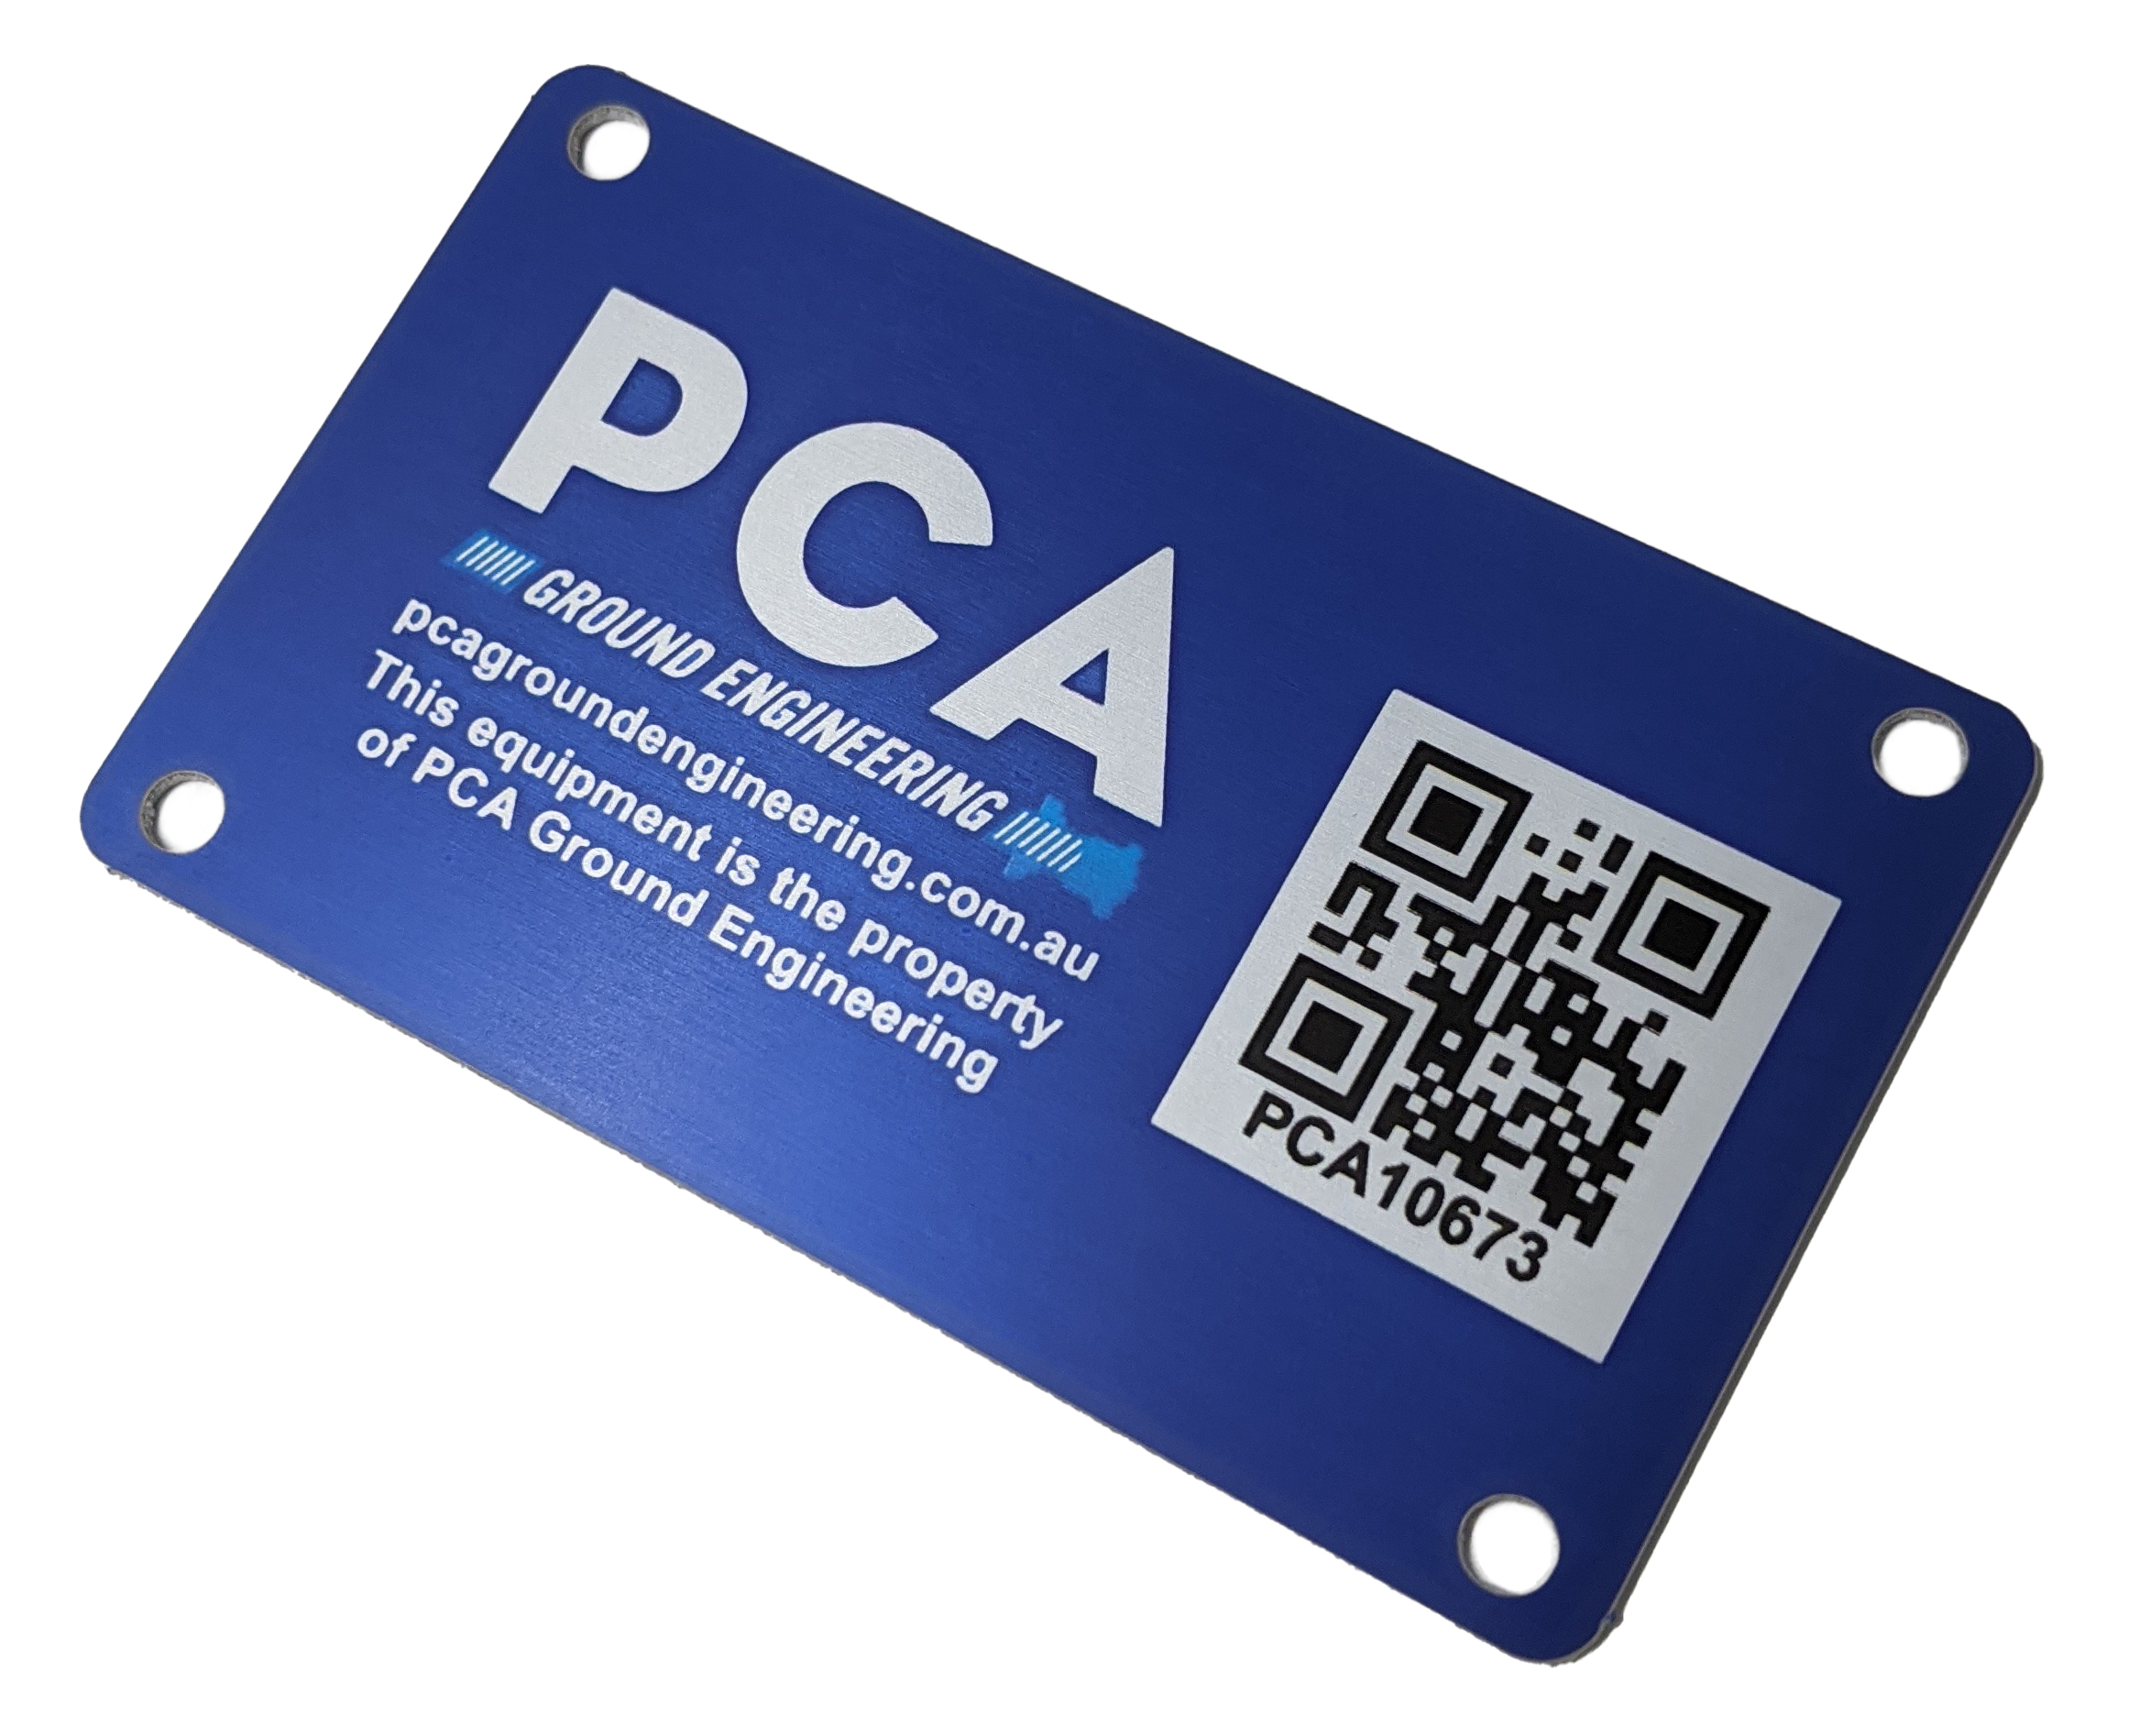 Blue asset label with QR code on right side.